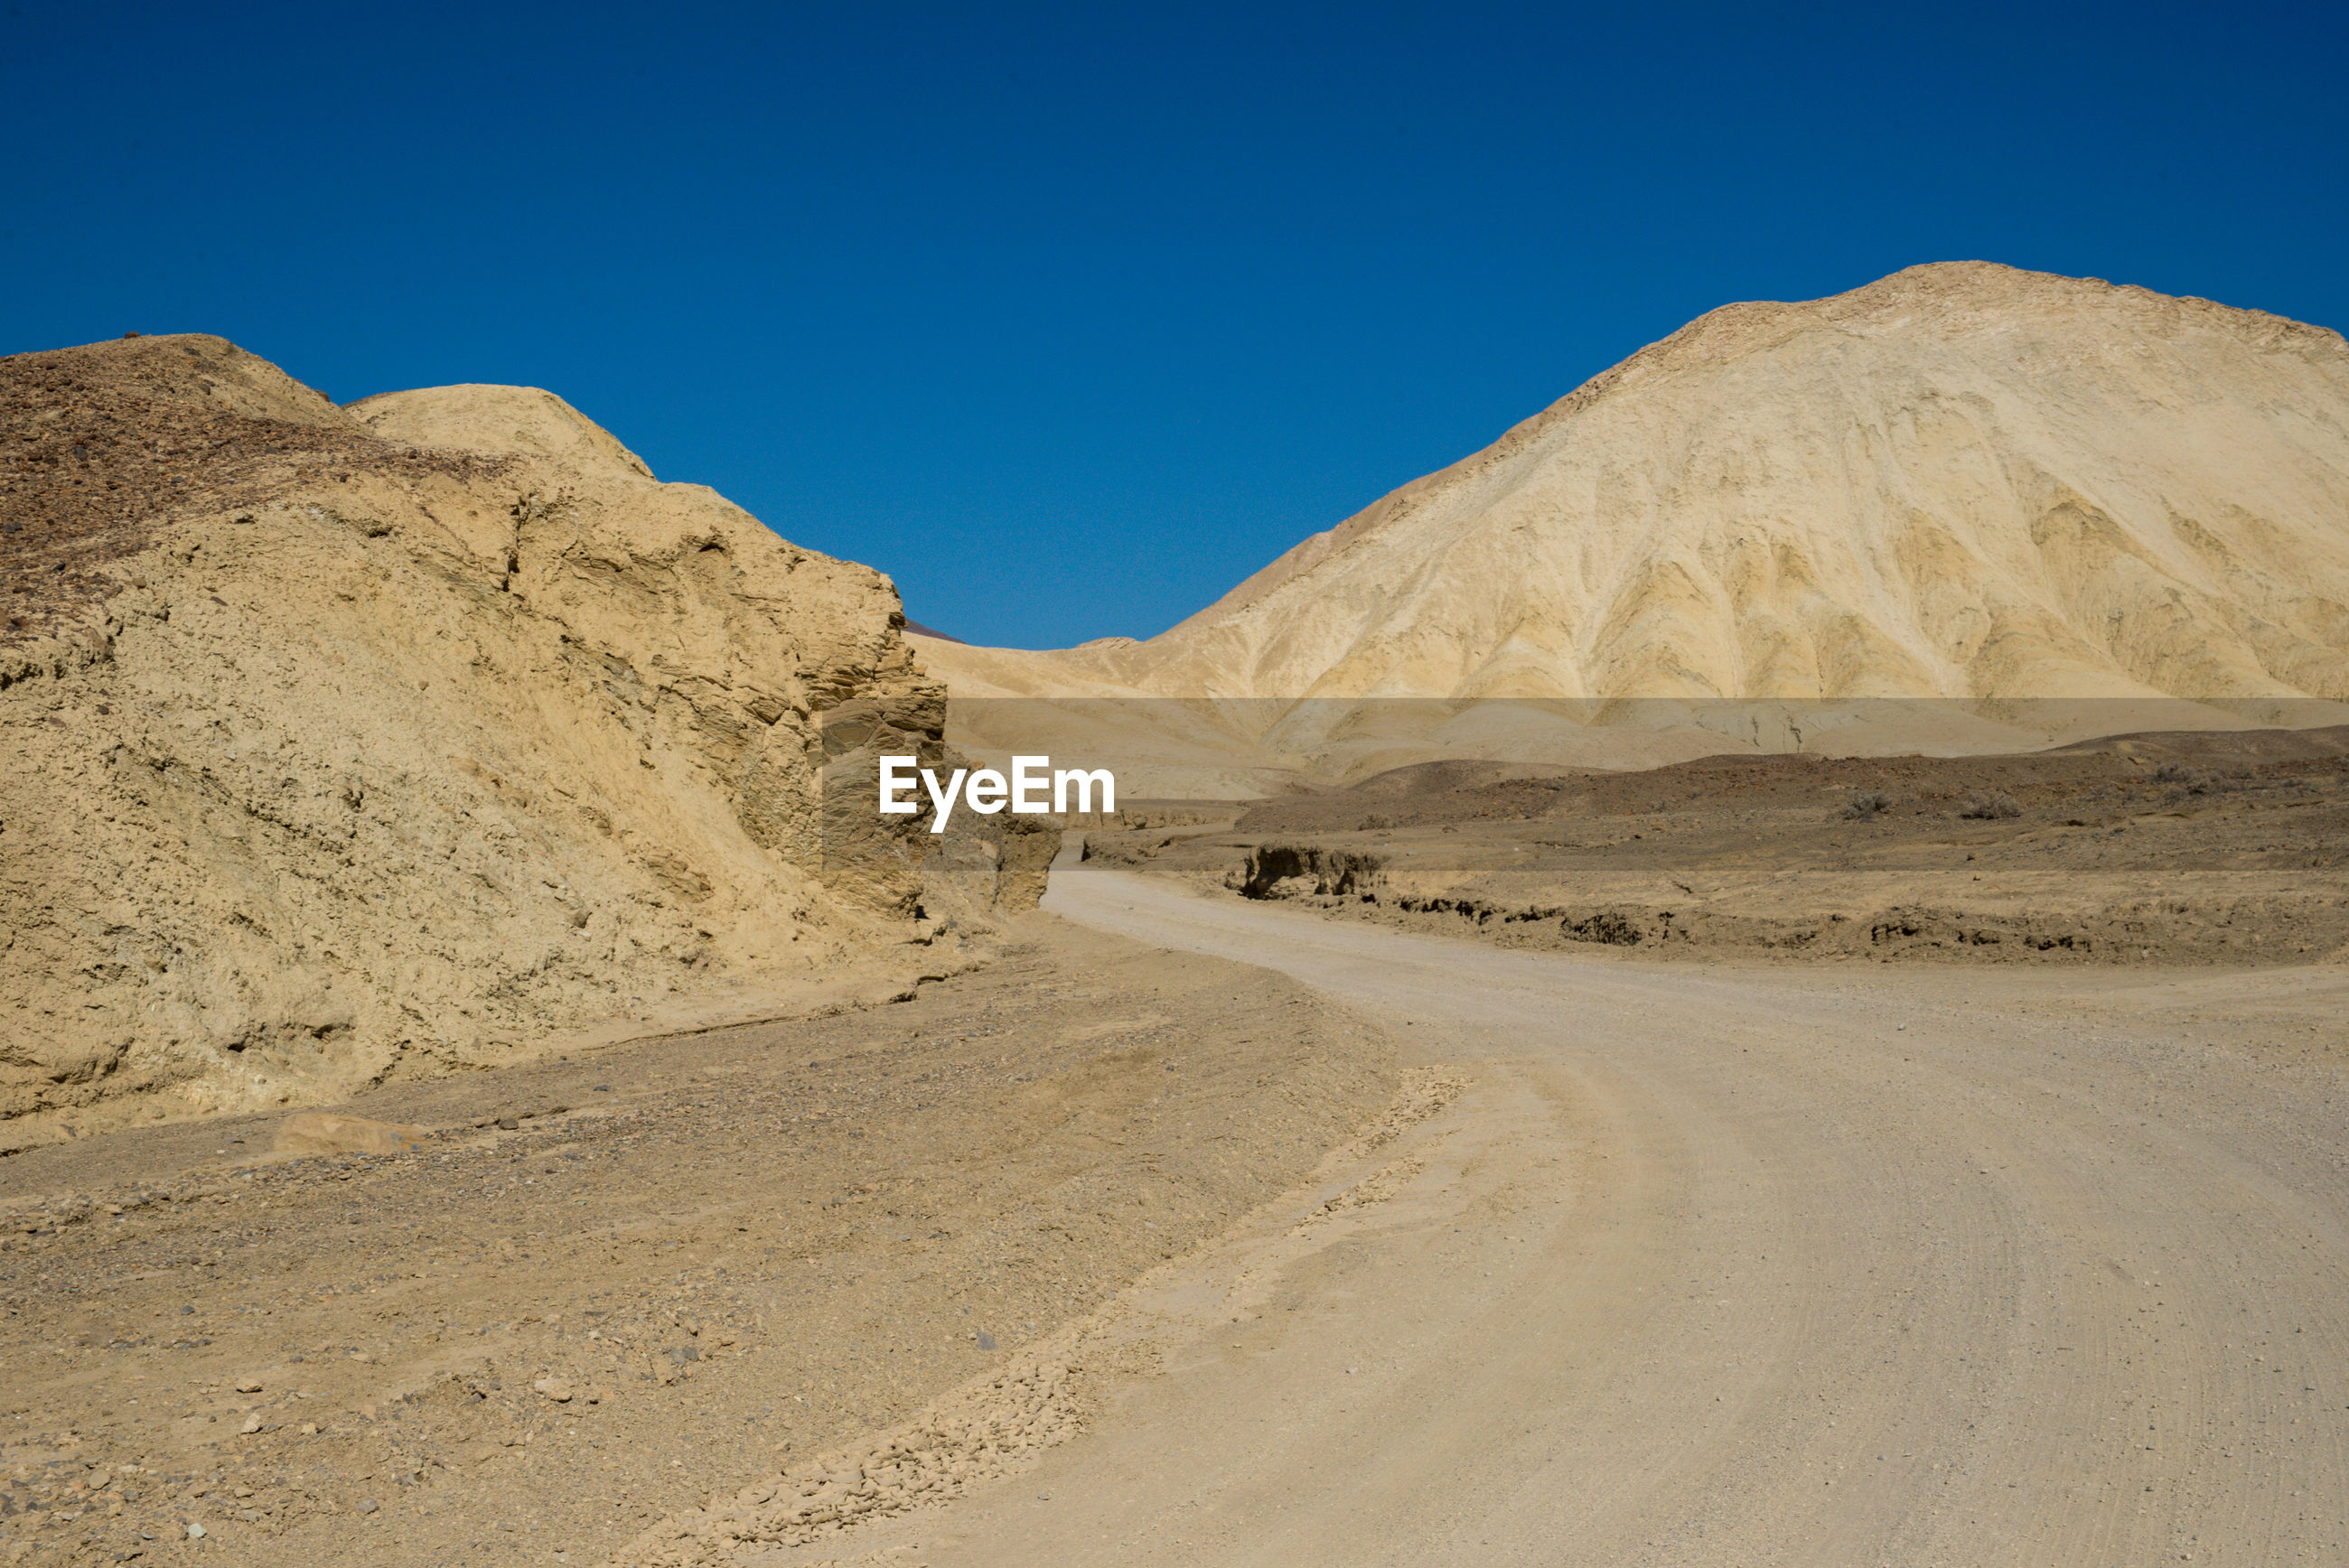 Road in desert against clear blue sky